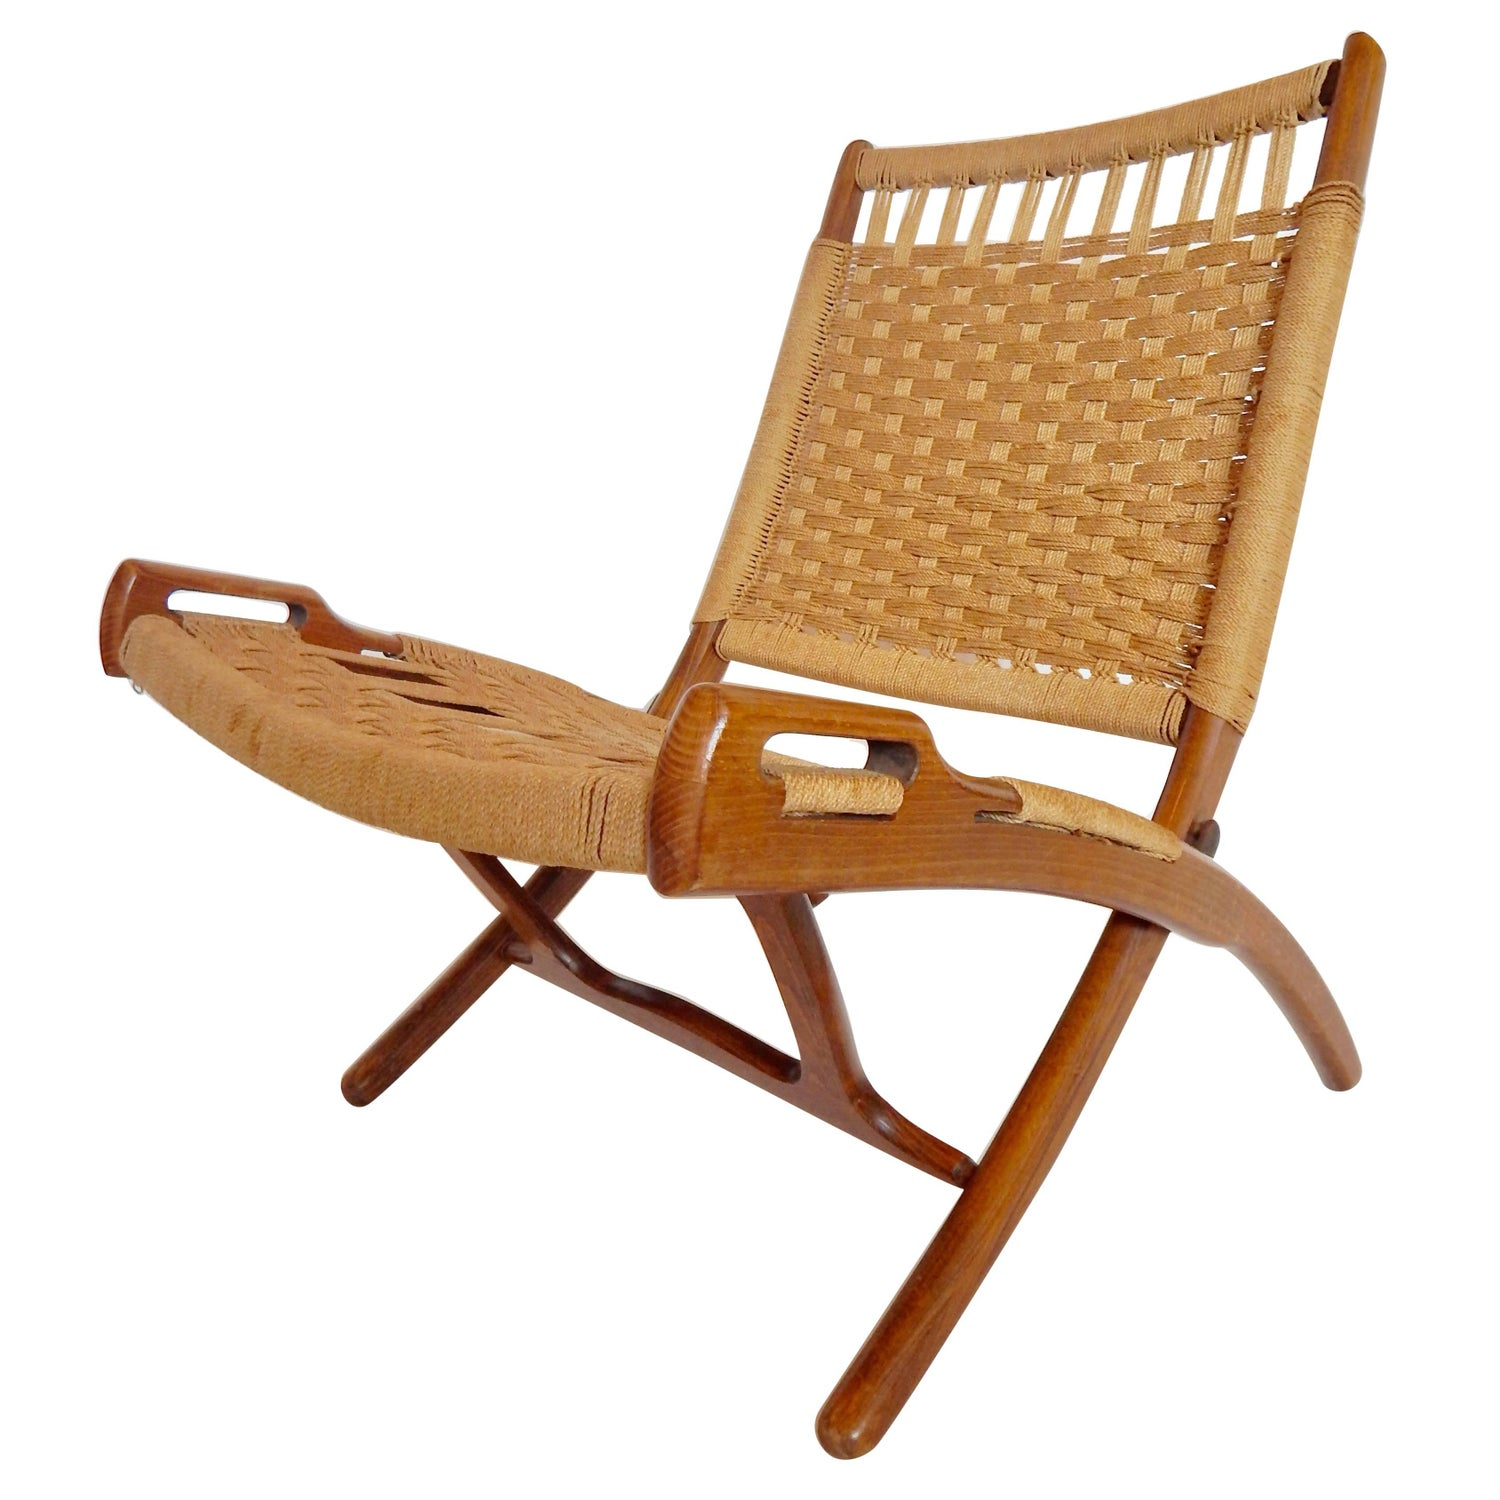 Mid Century Folding Chairs 156 For Sale on 1stdibs